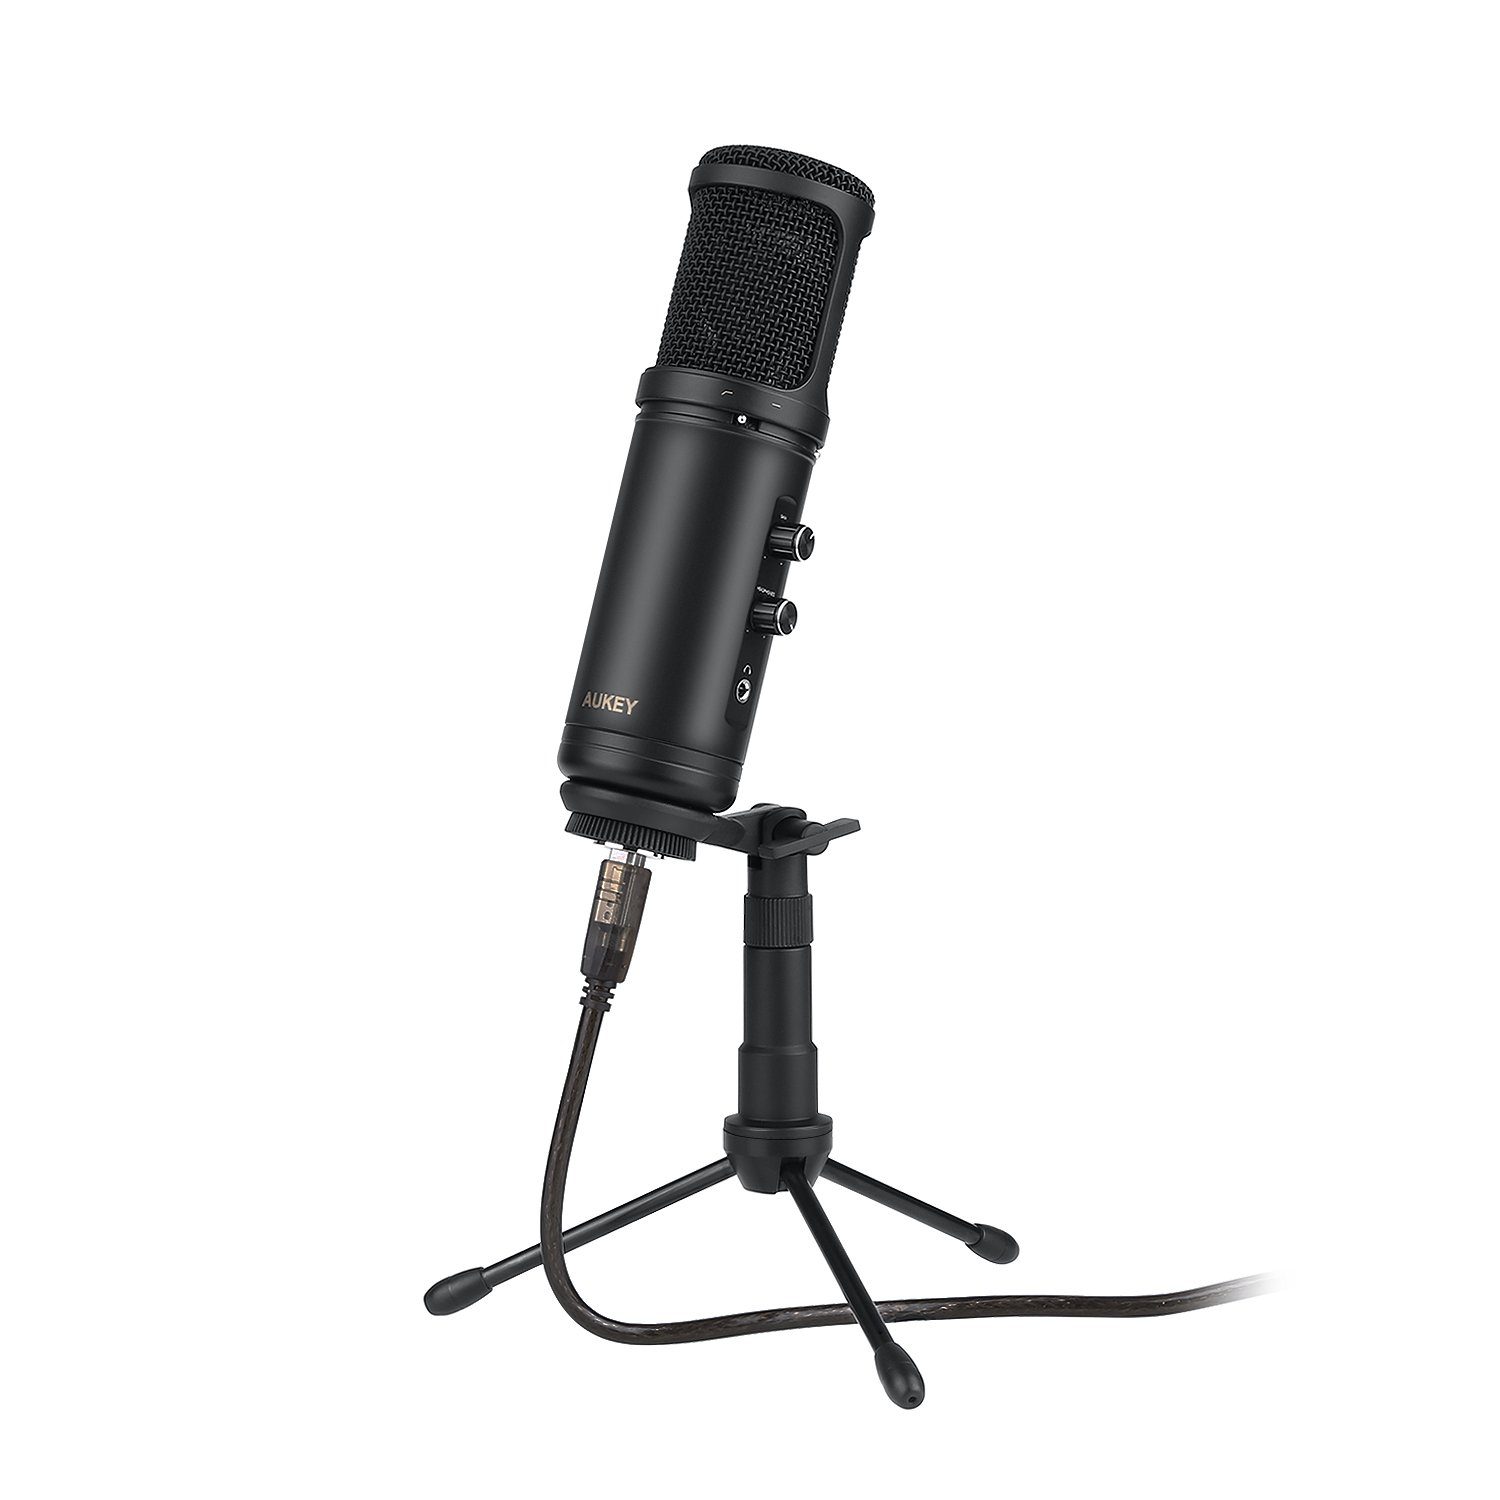 AUKEY Condenser Microphone for Recording, USB Cardioid Microphone with 3.5mm Headphone Jack, and Tripod Stand for Mac, PC and Computer by AUKEY